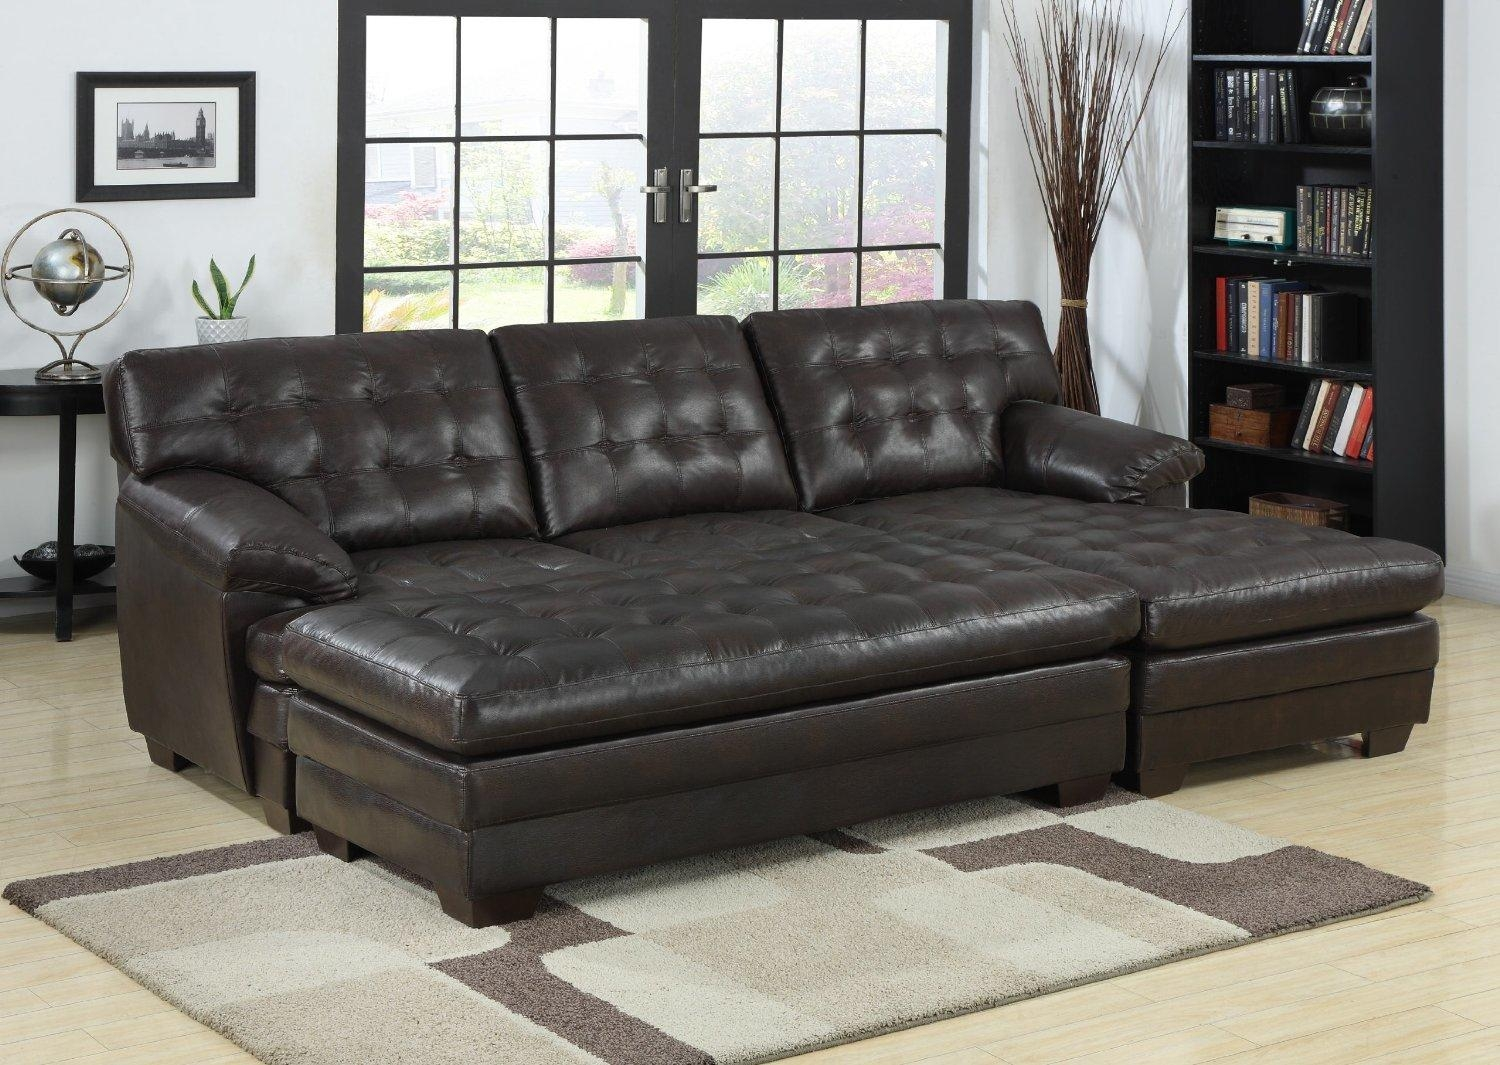 Fresh Sofa Chaise Lounge 82 For Living Room Sofa Ideas With Sofa Throughout Sofas With Chaise Longue (View 11 of 20)